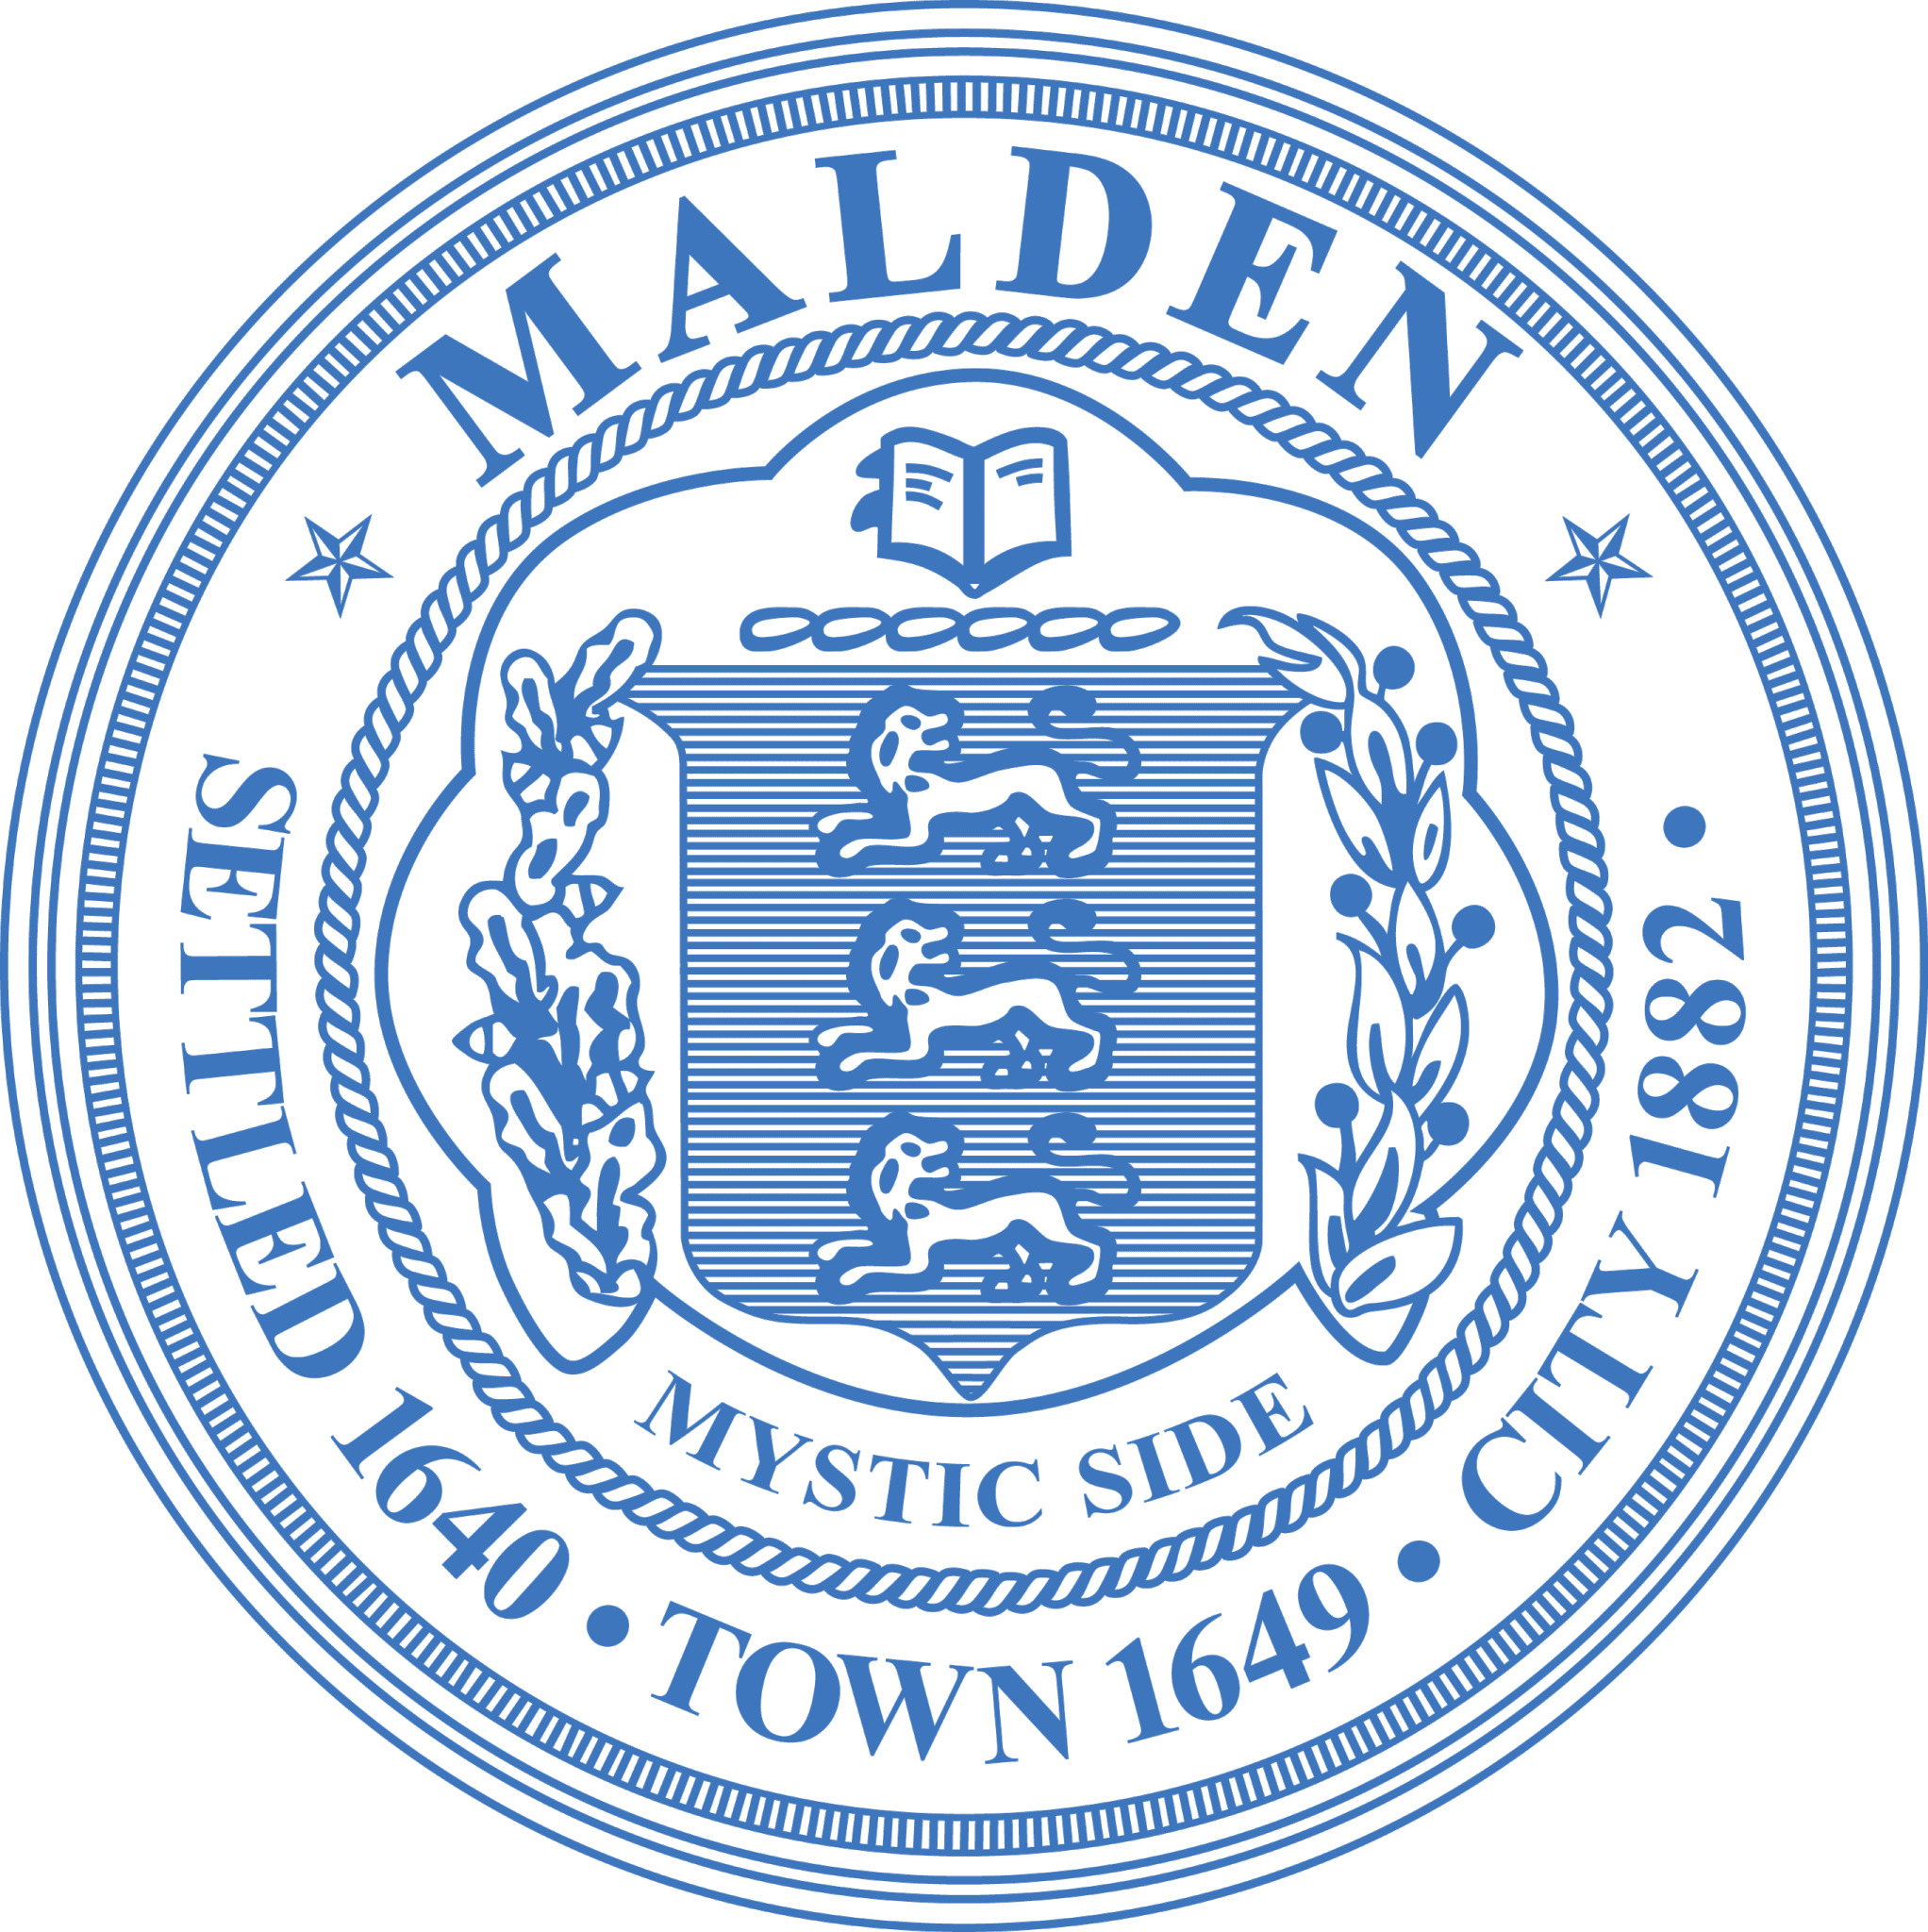 Malden City Hall Redevelopment